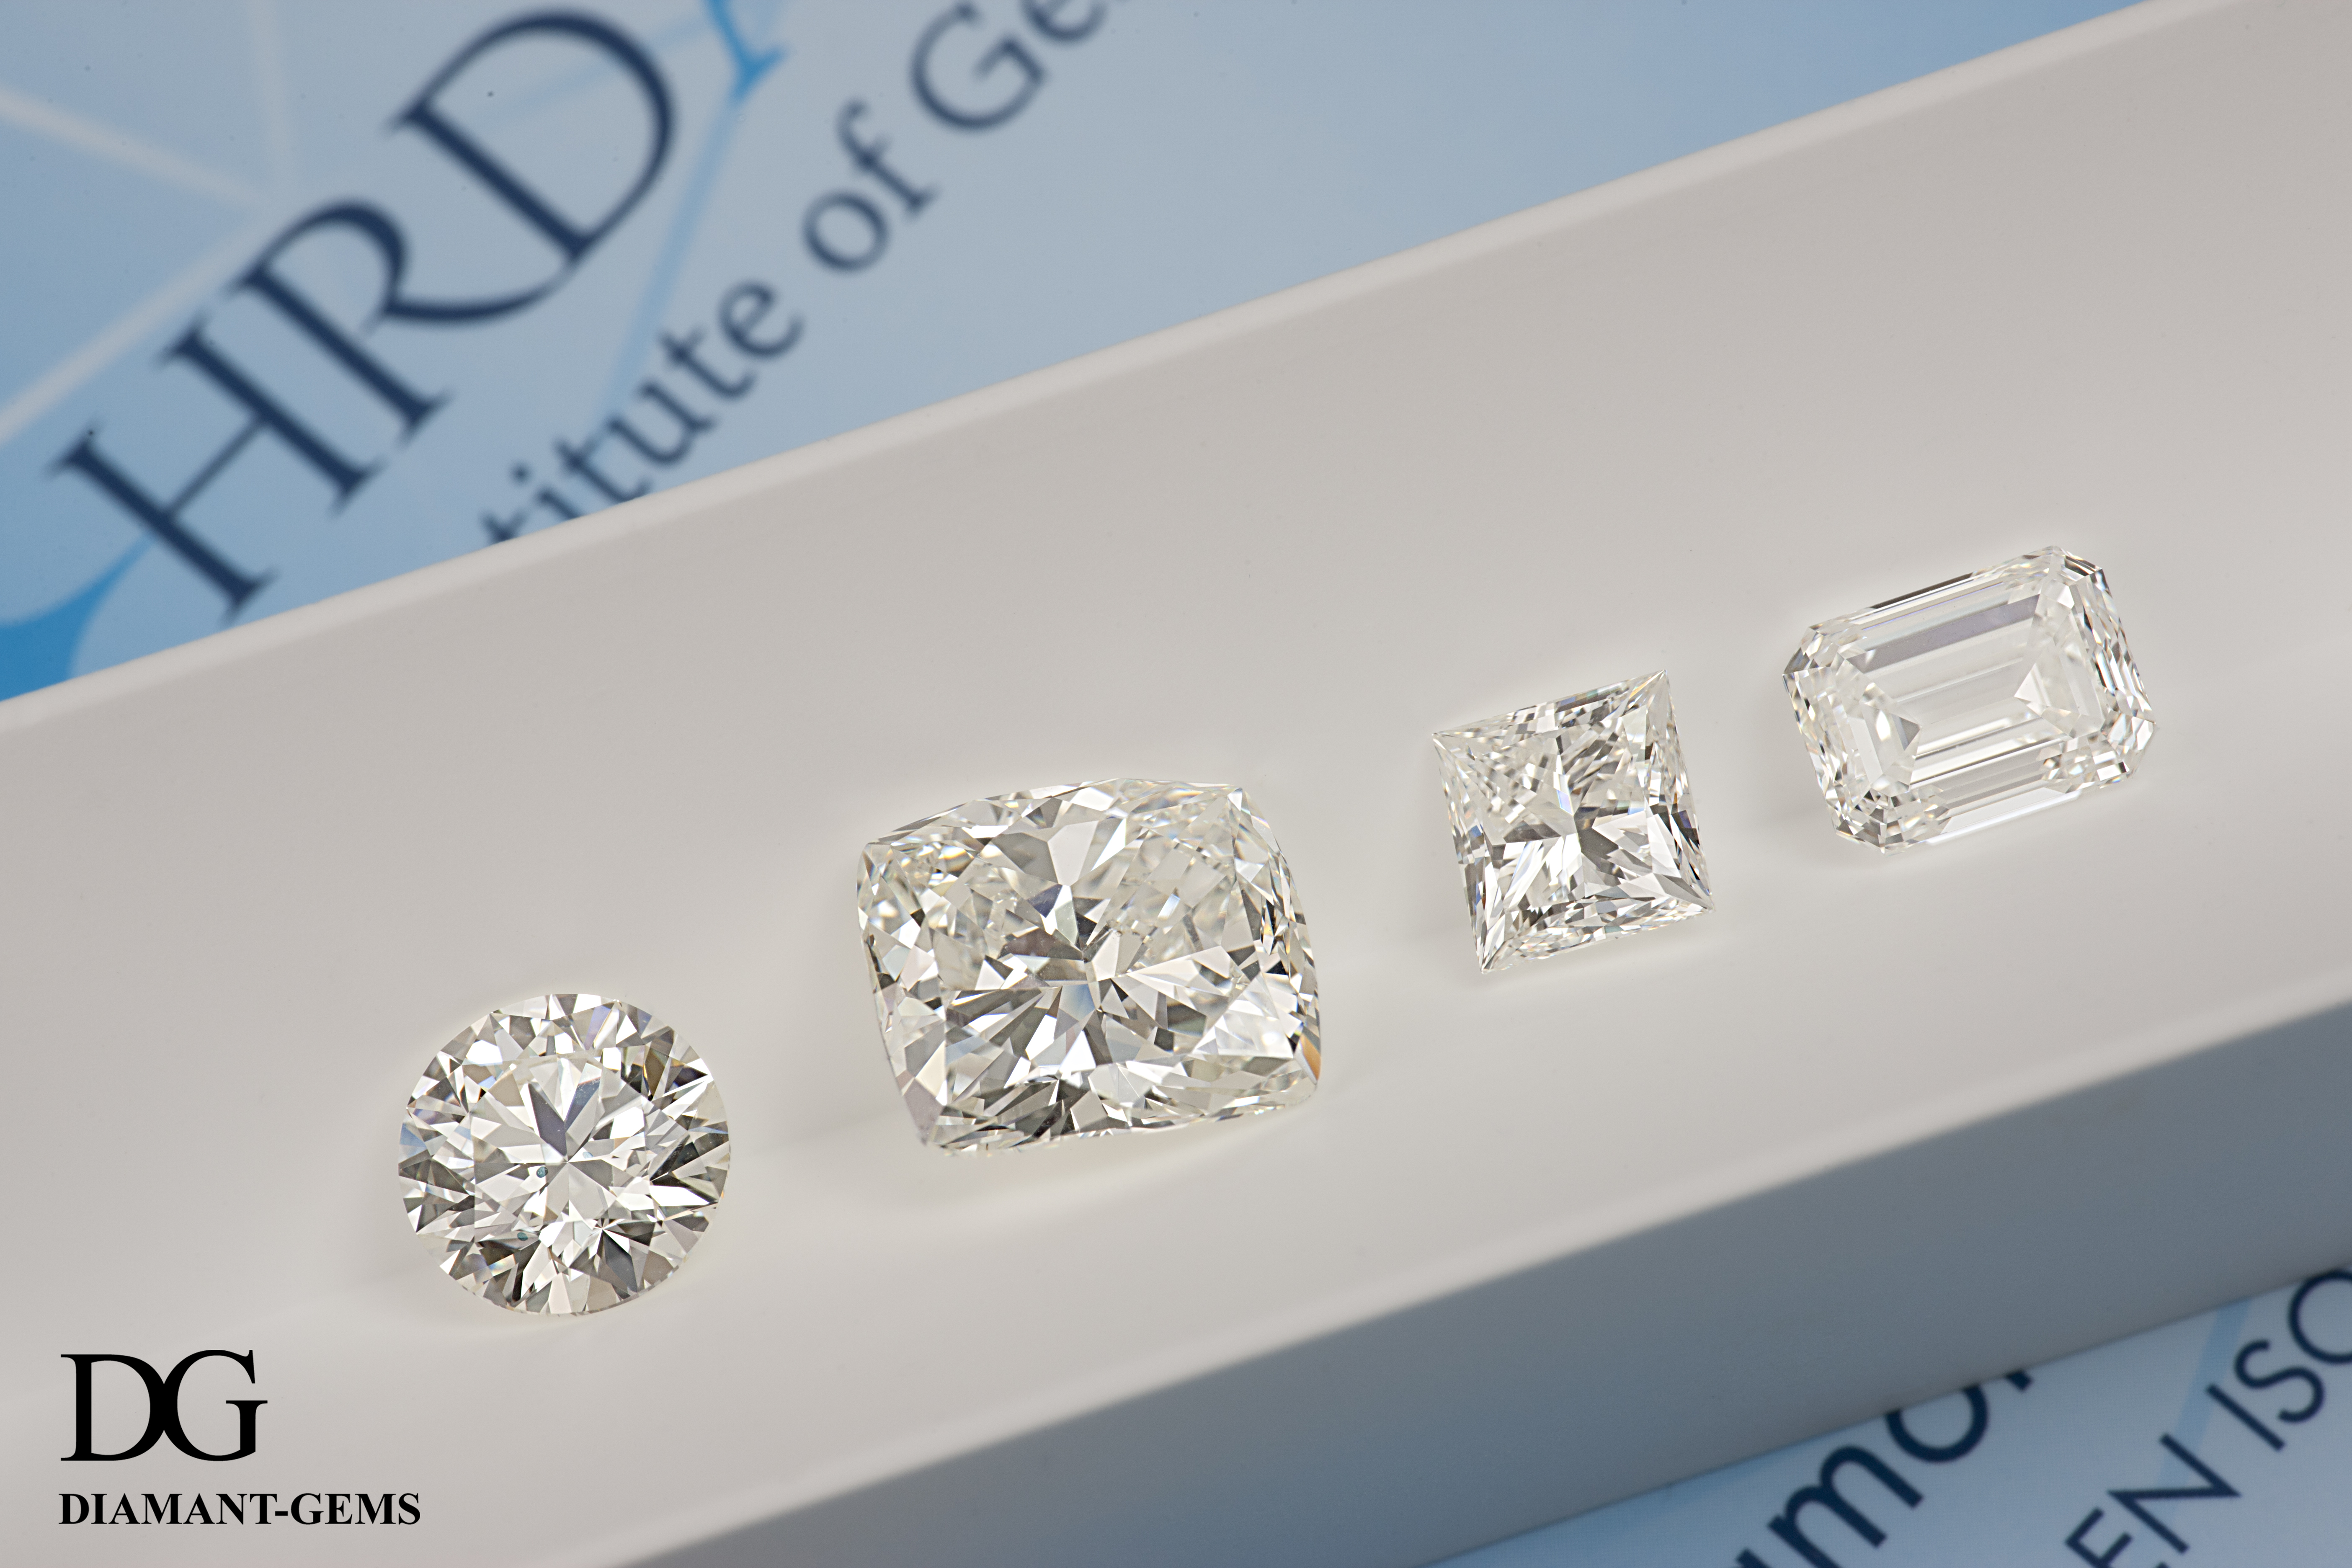 presentation of 4 different shaped white diamonds